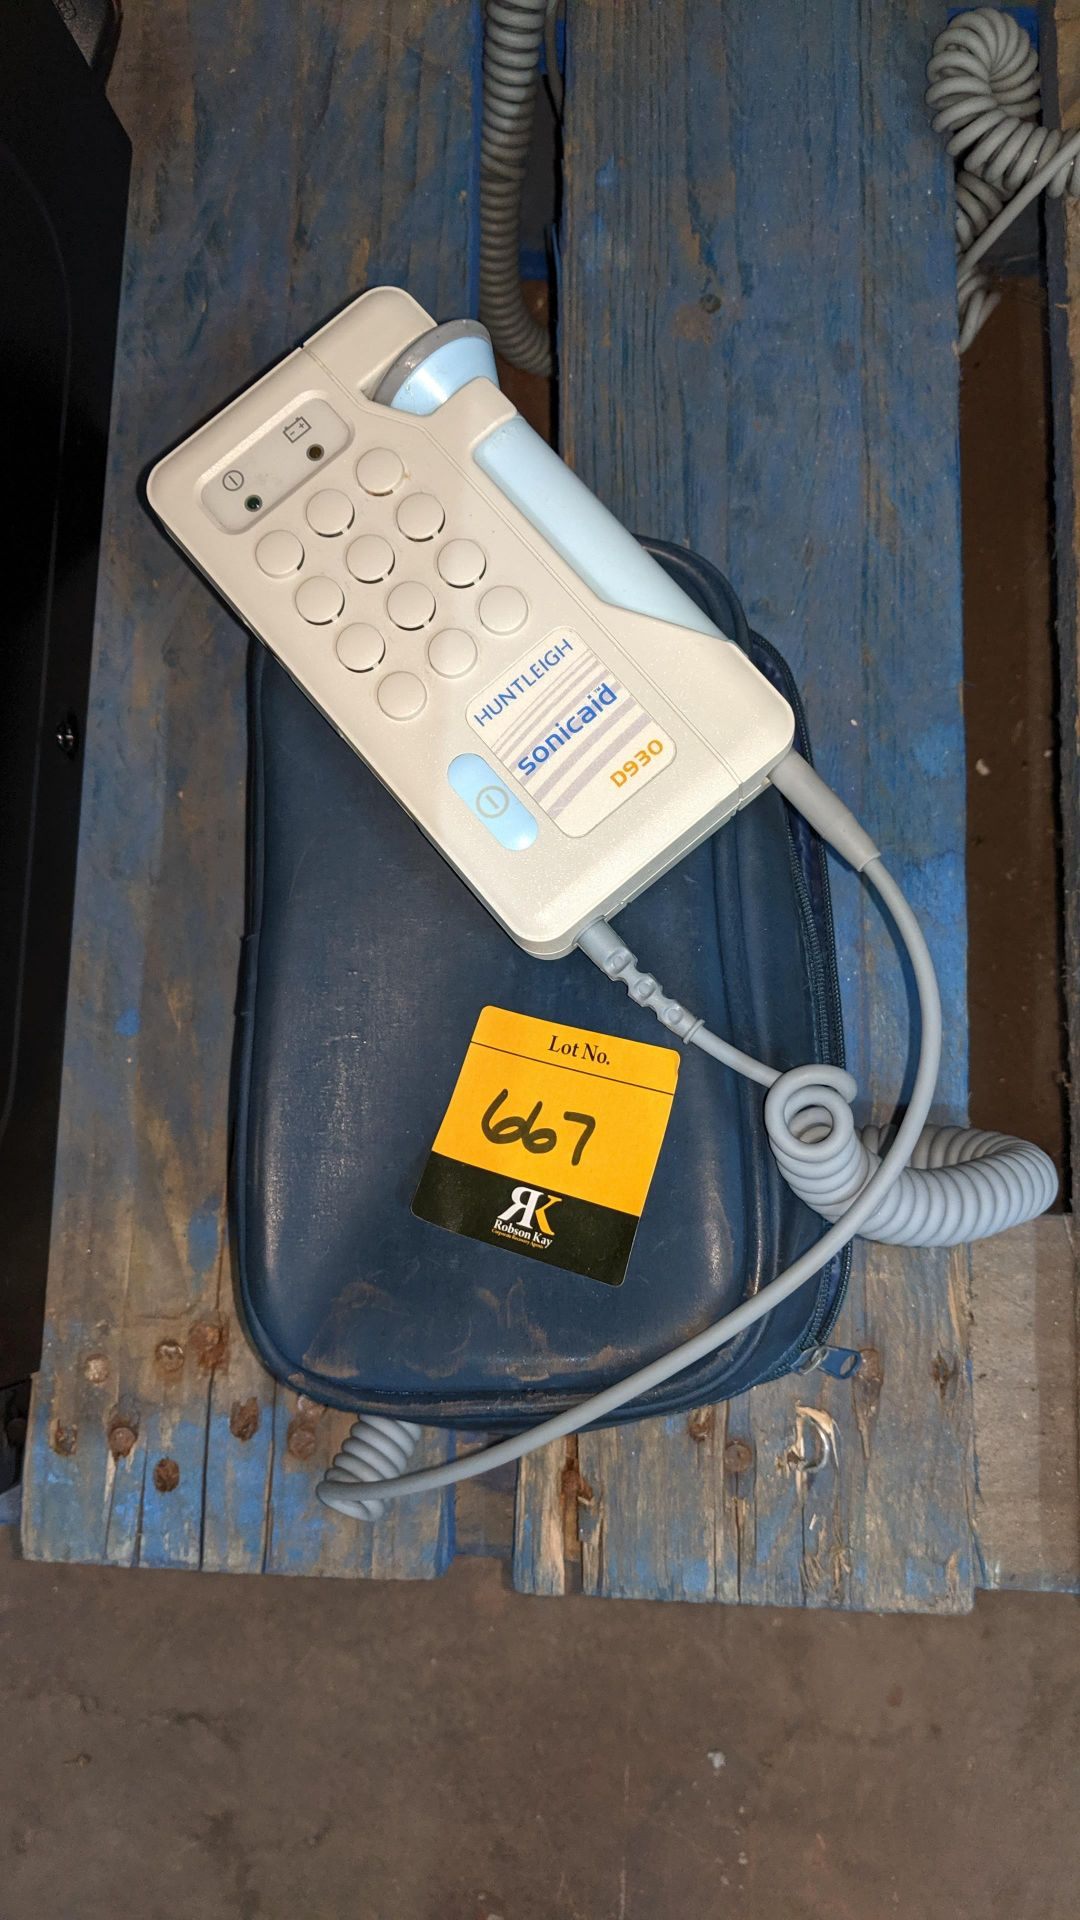 Lot 667 - Huntleigh Sonicaid D930 Fetal Doppler including case. This is one of a large number of lots used/